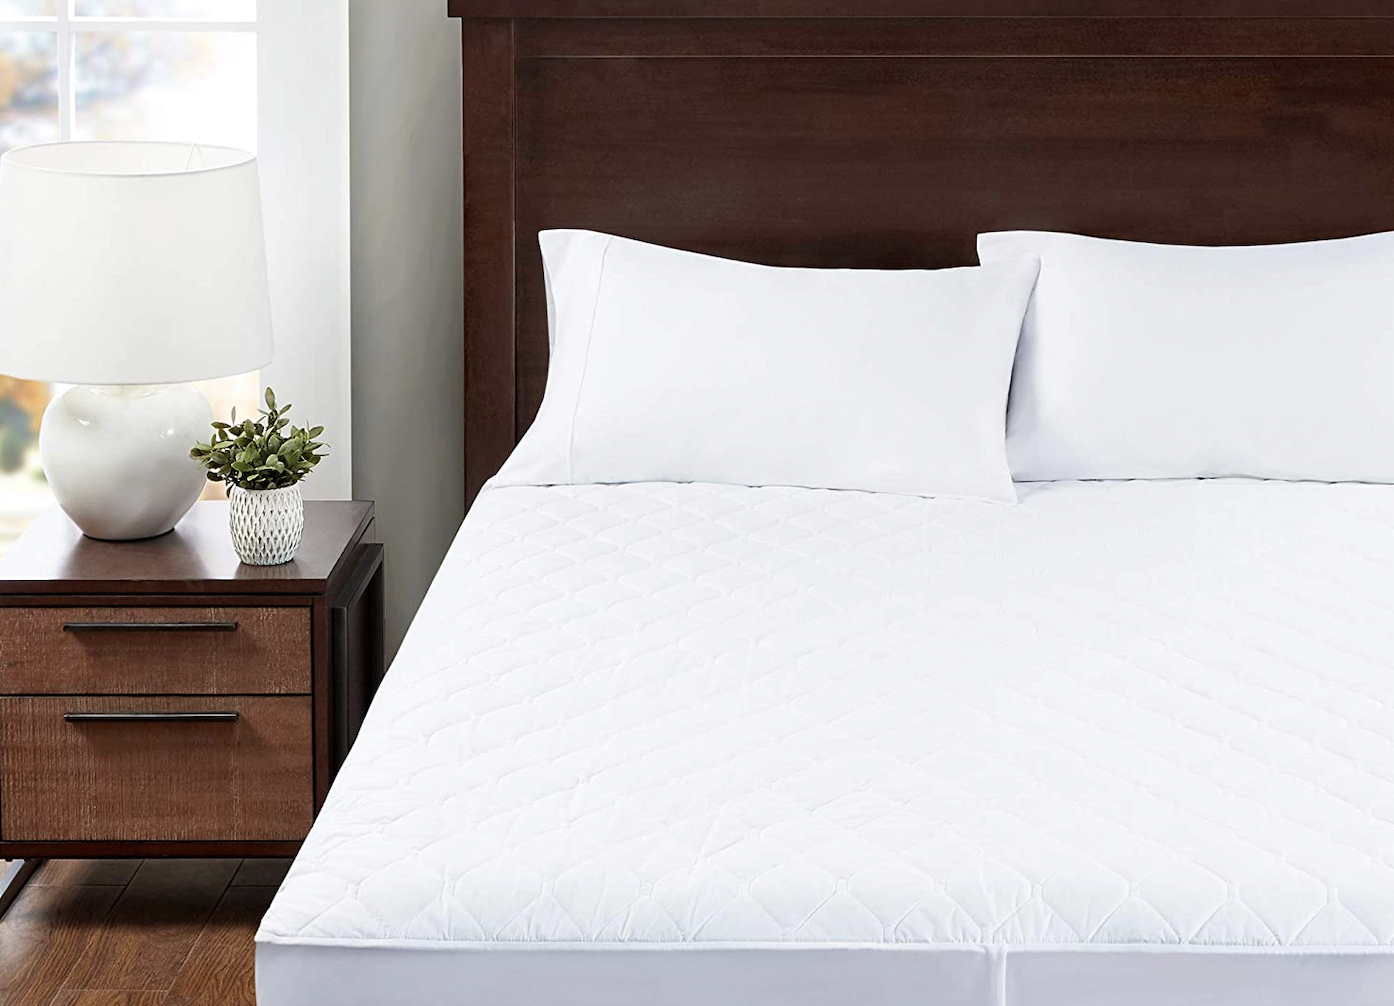 Best Heated Mattress Pads For Every Bed Top Picks For Winter 2021 Rolling Stone